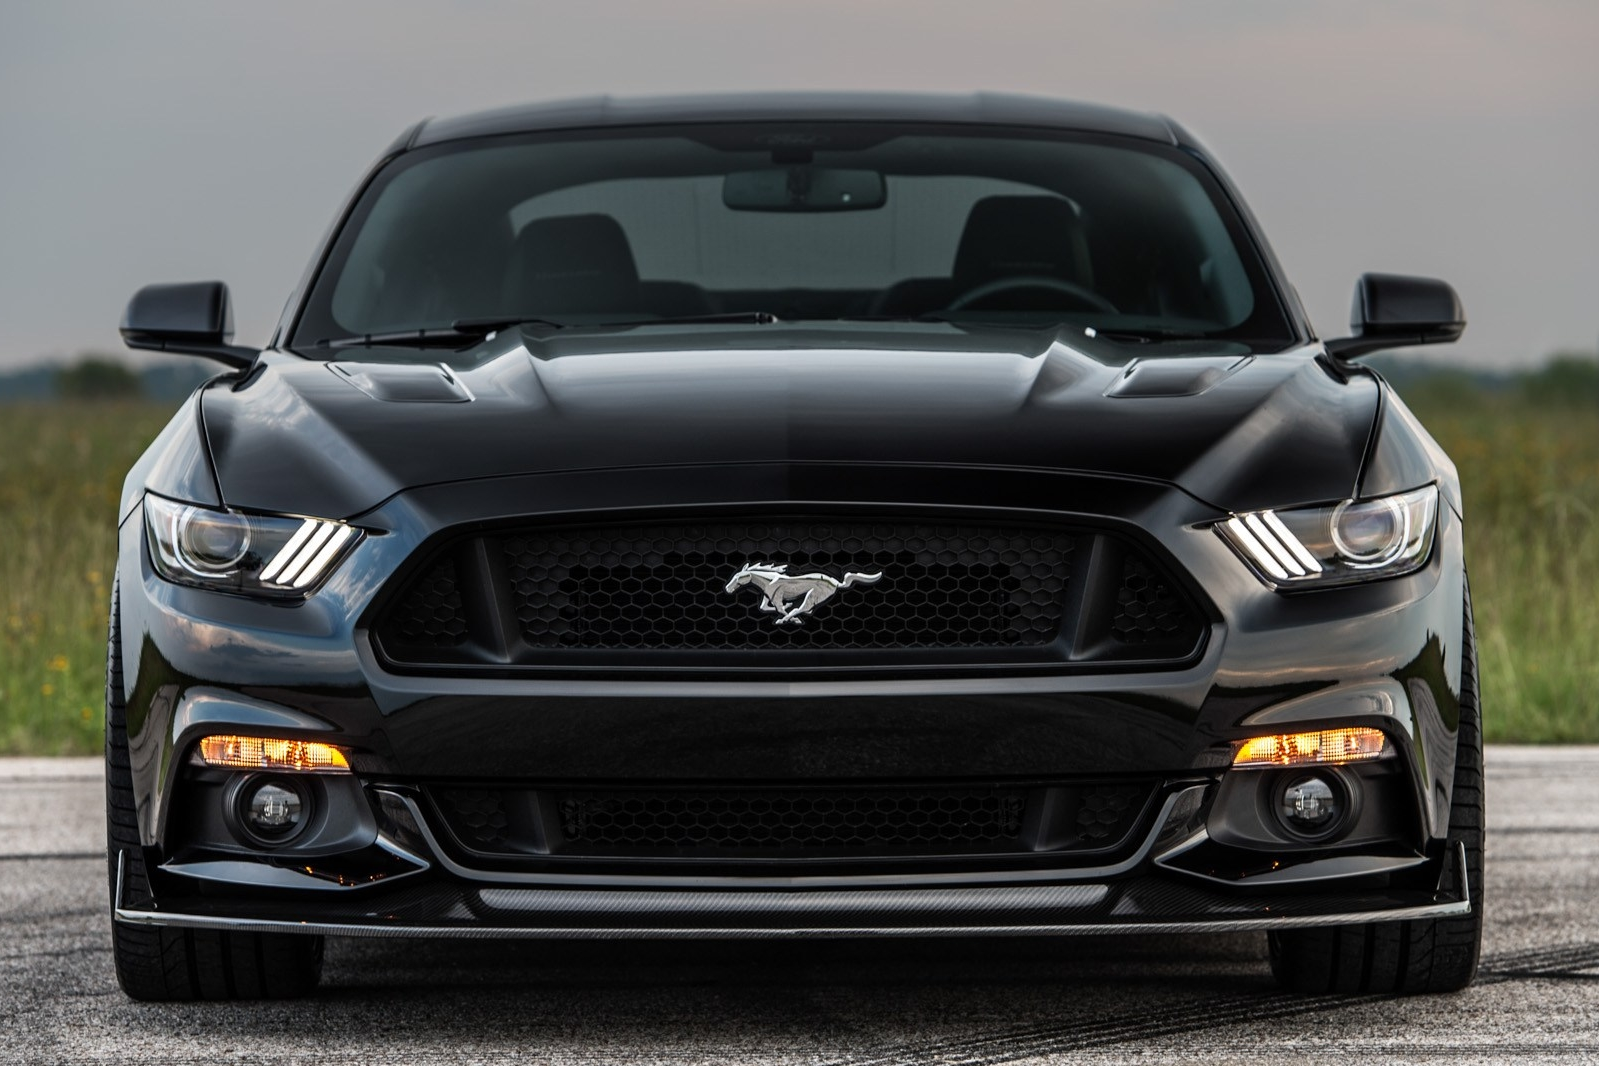 Hennessey-25th-Anniversary-Edition-HPE800-Ford-Mustang-4